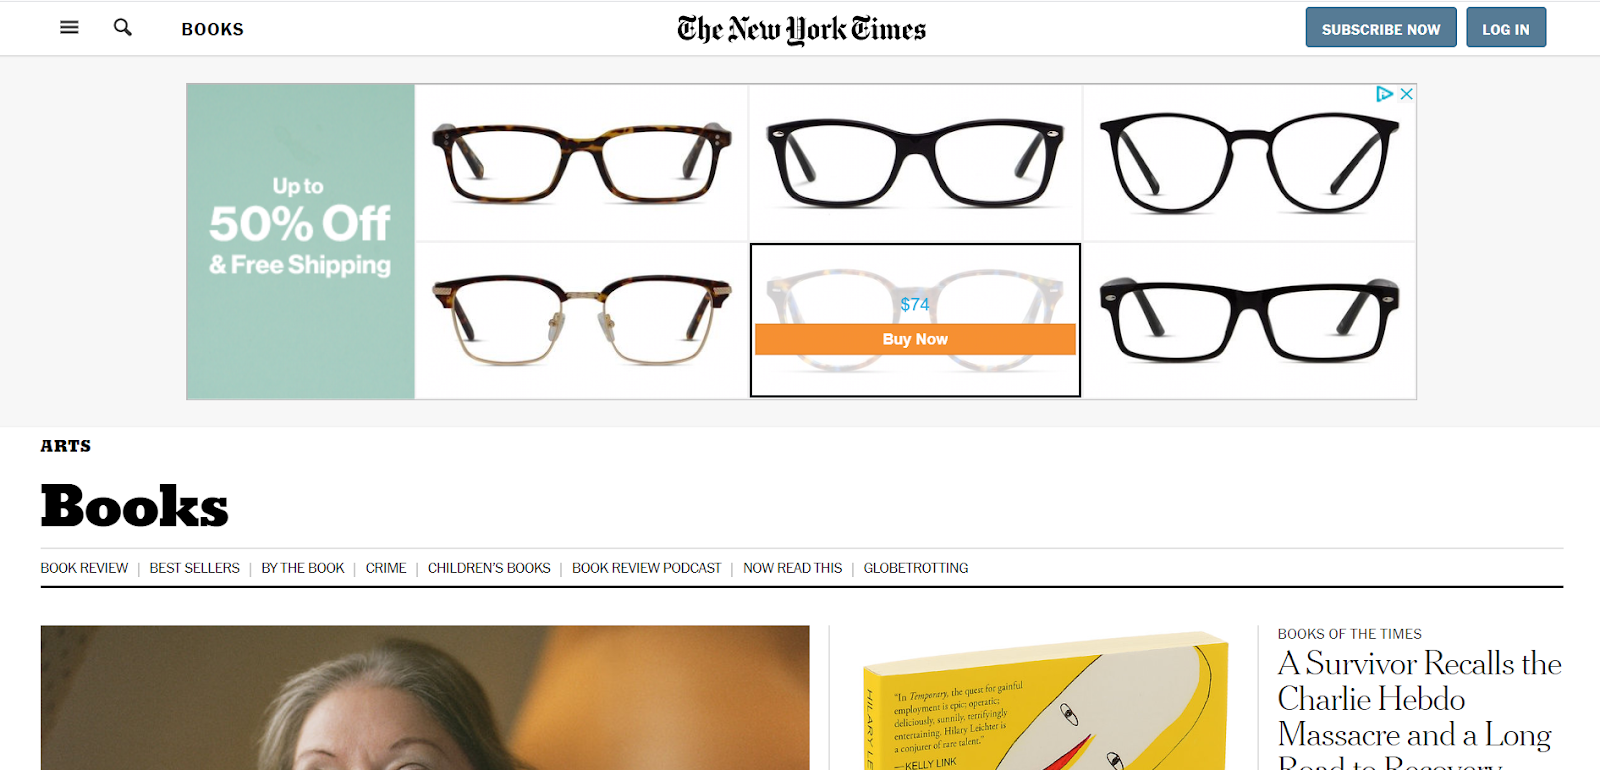 contextual-offers-nyt-example